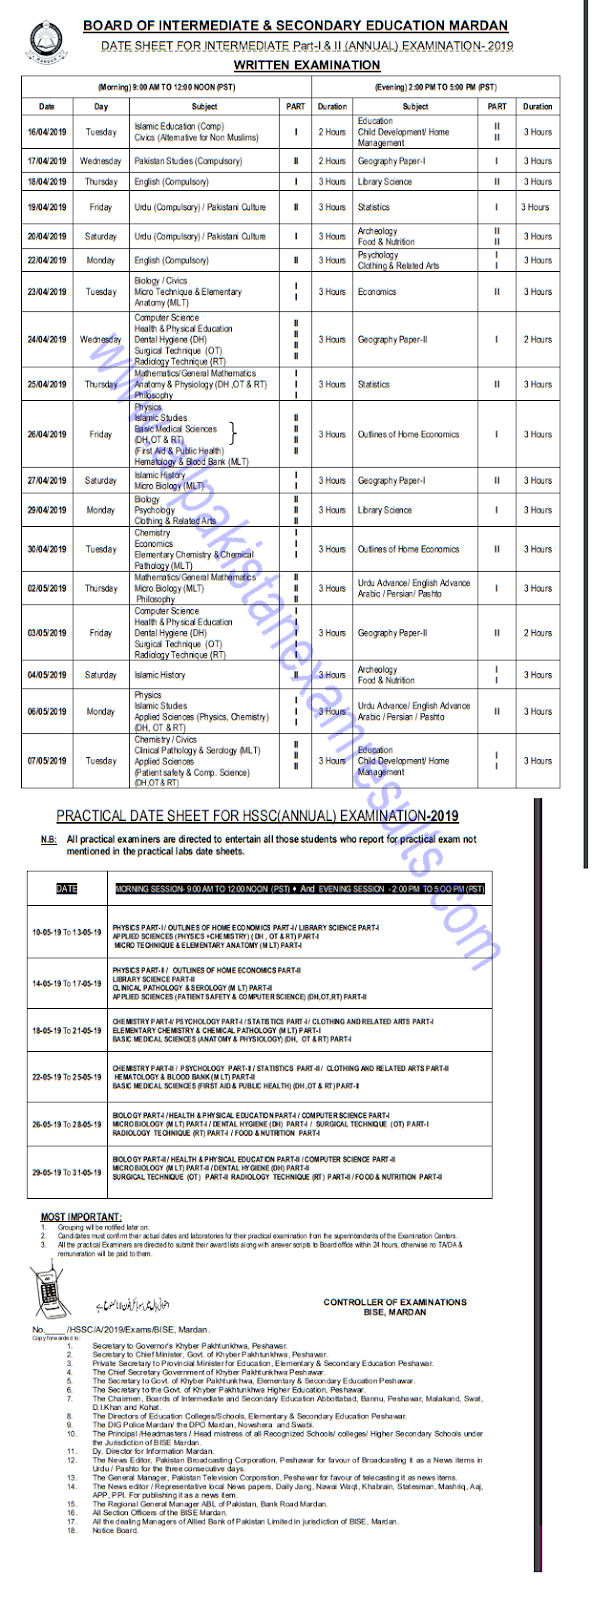 BISE Mardan Board Inter Date Sheet 2019